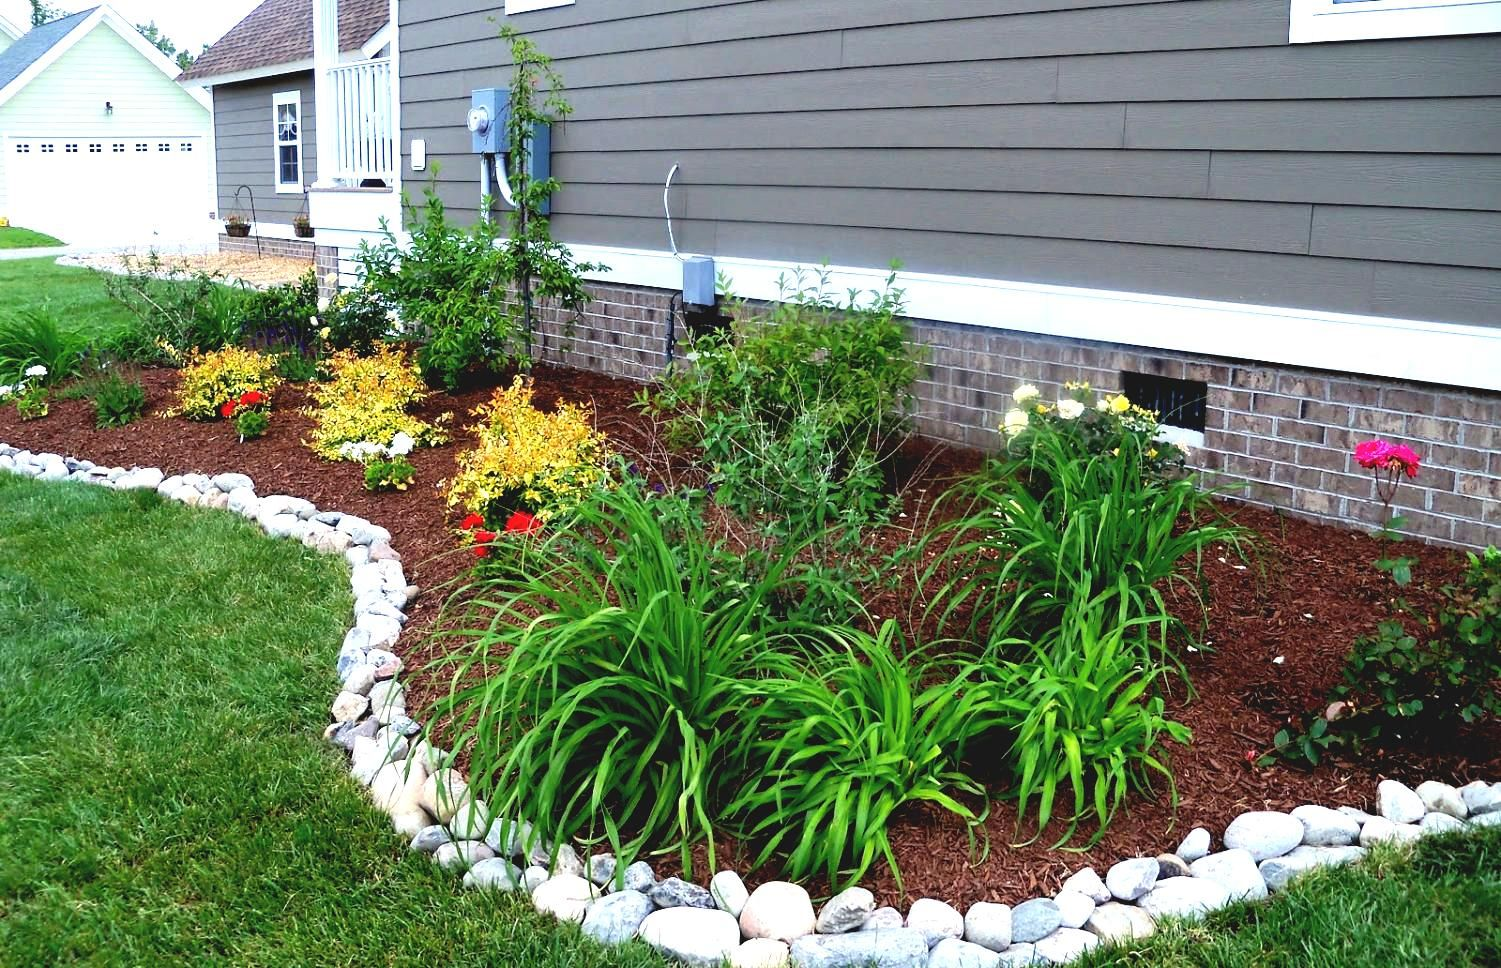 Landscaping Around The House : Landscape edging stone ideas garden plastic rock